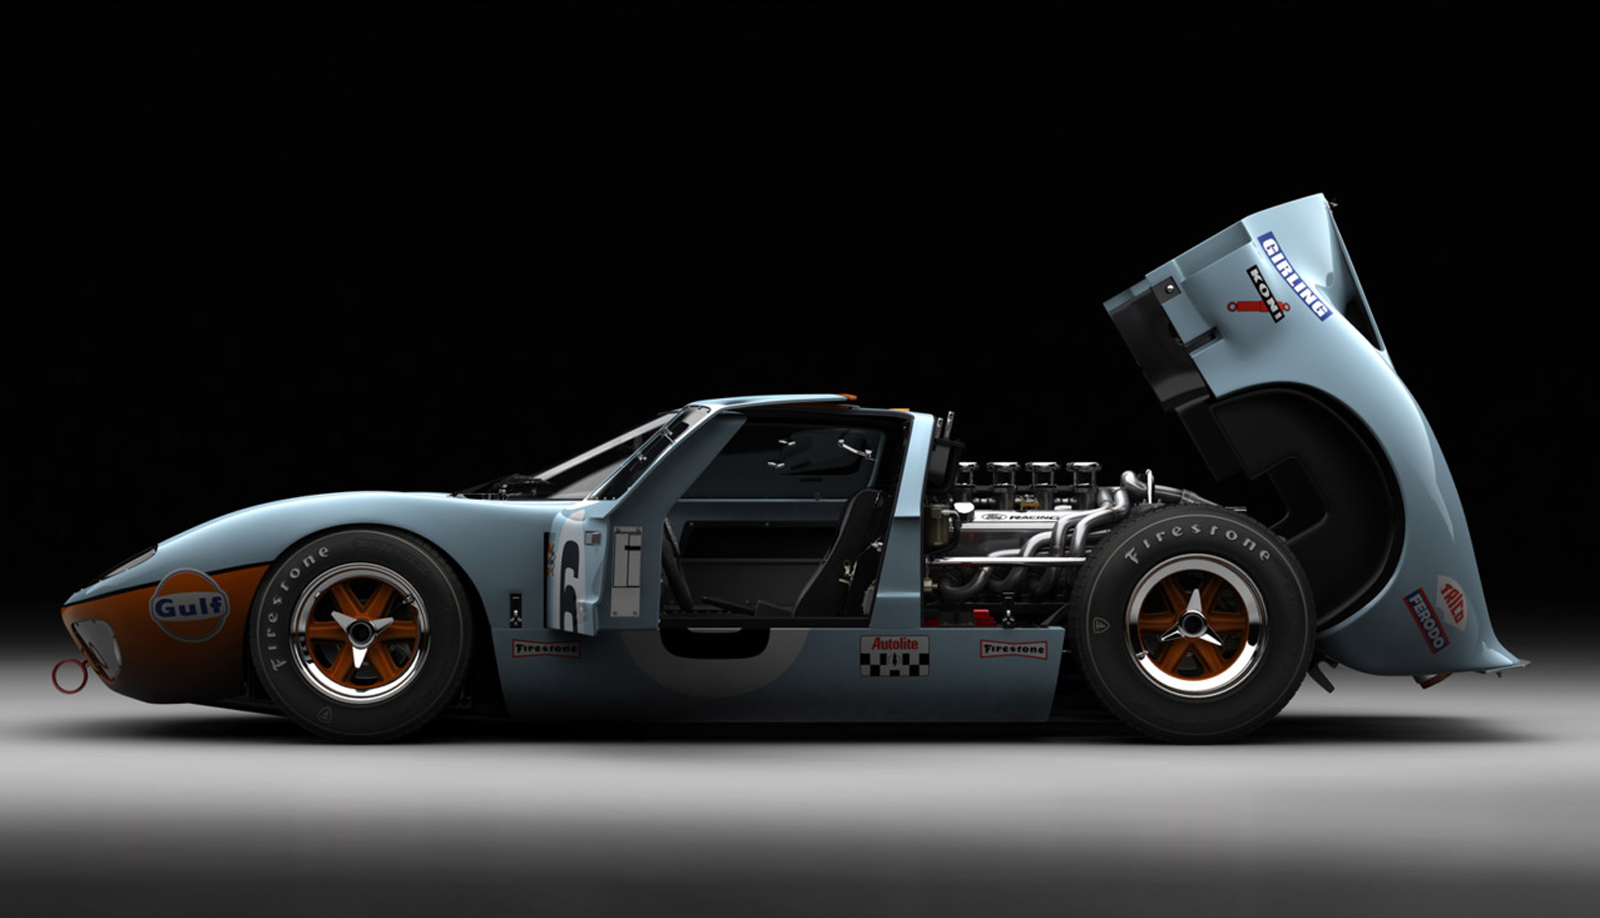 Ford GT 40 #8